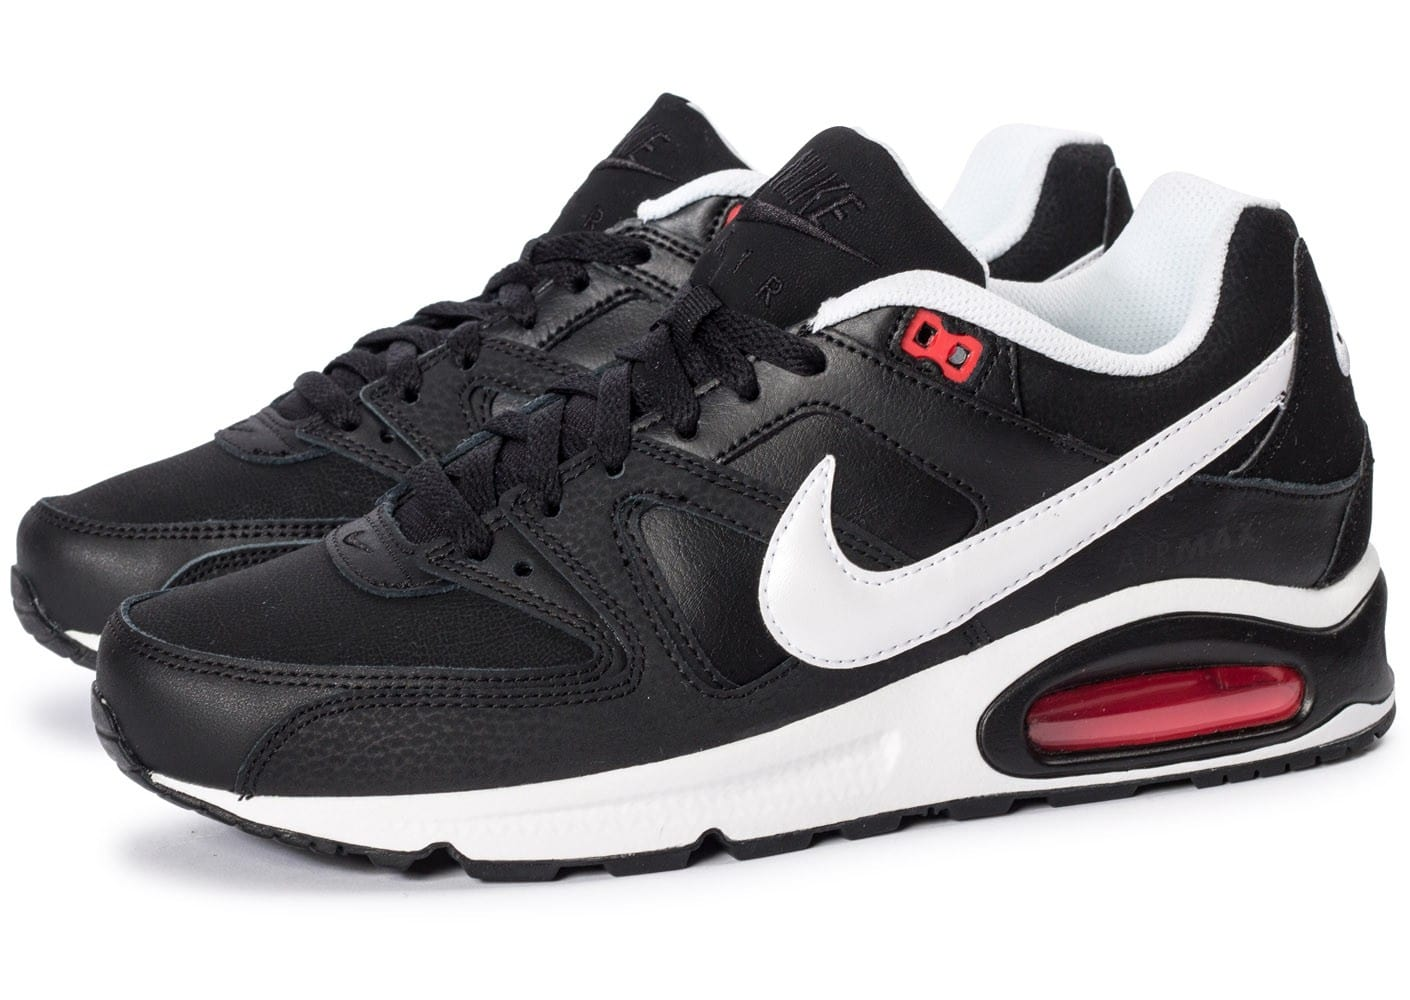 nike air max command noire et blanche chaussures homme chausport. Black Bedroom Furniture Sets. Home Design Ideas